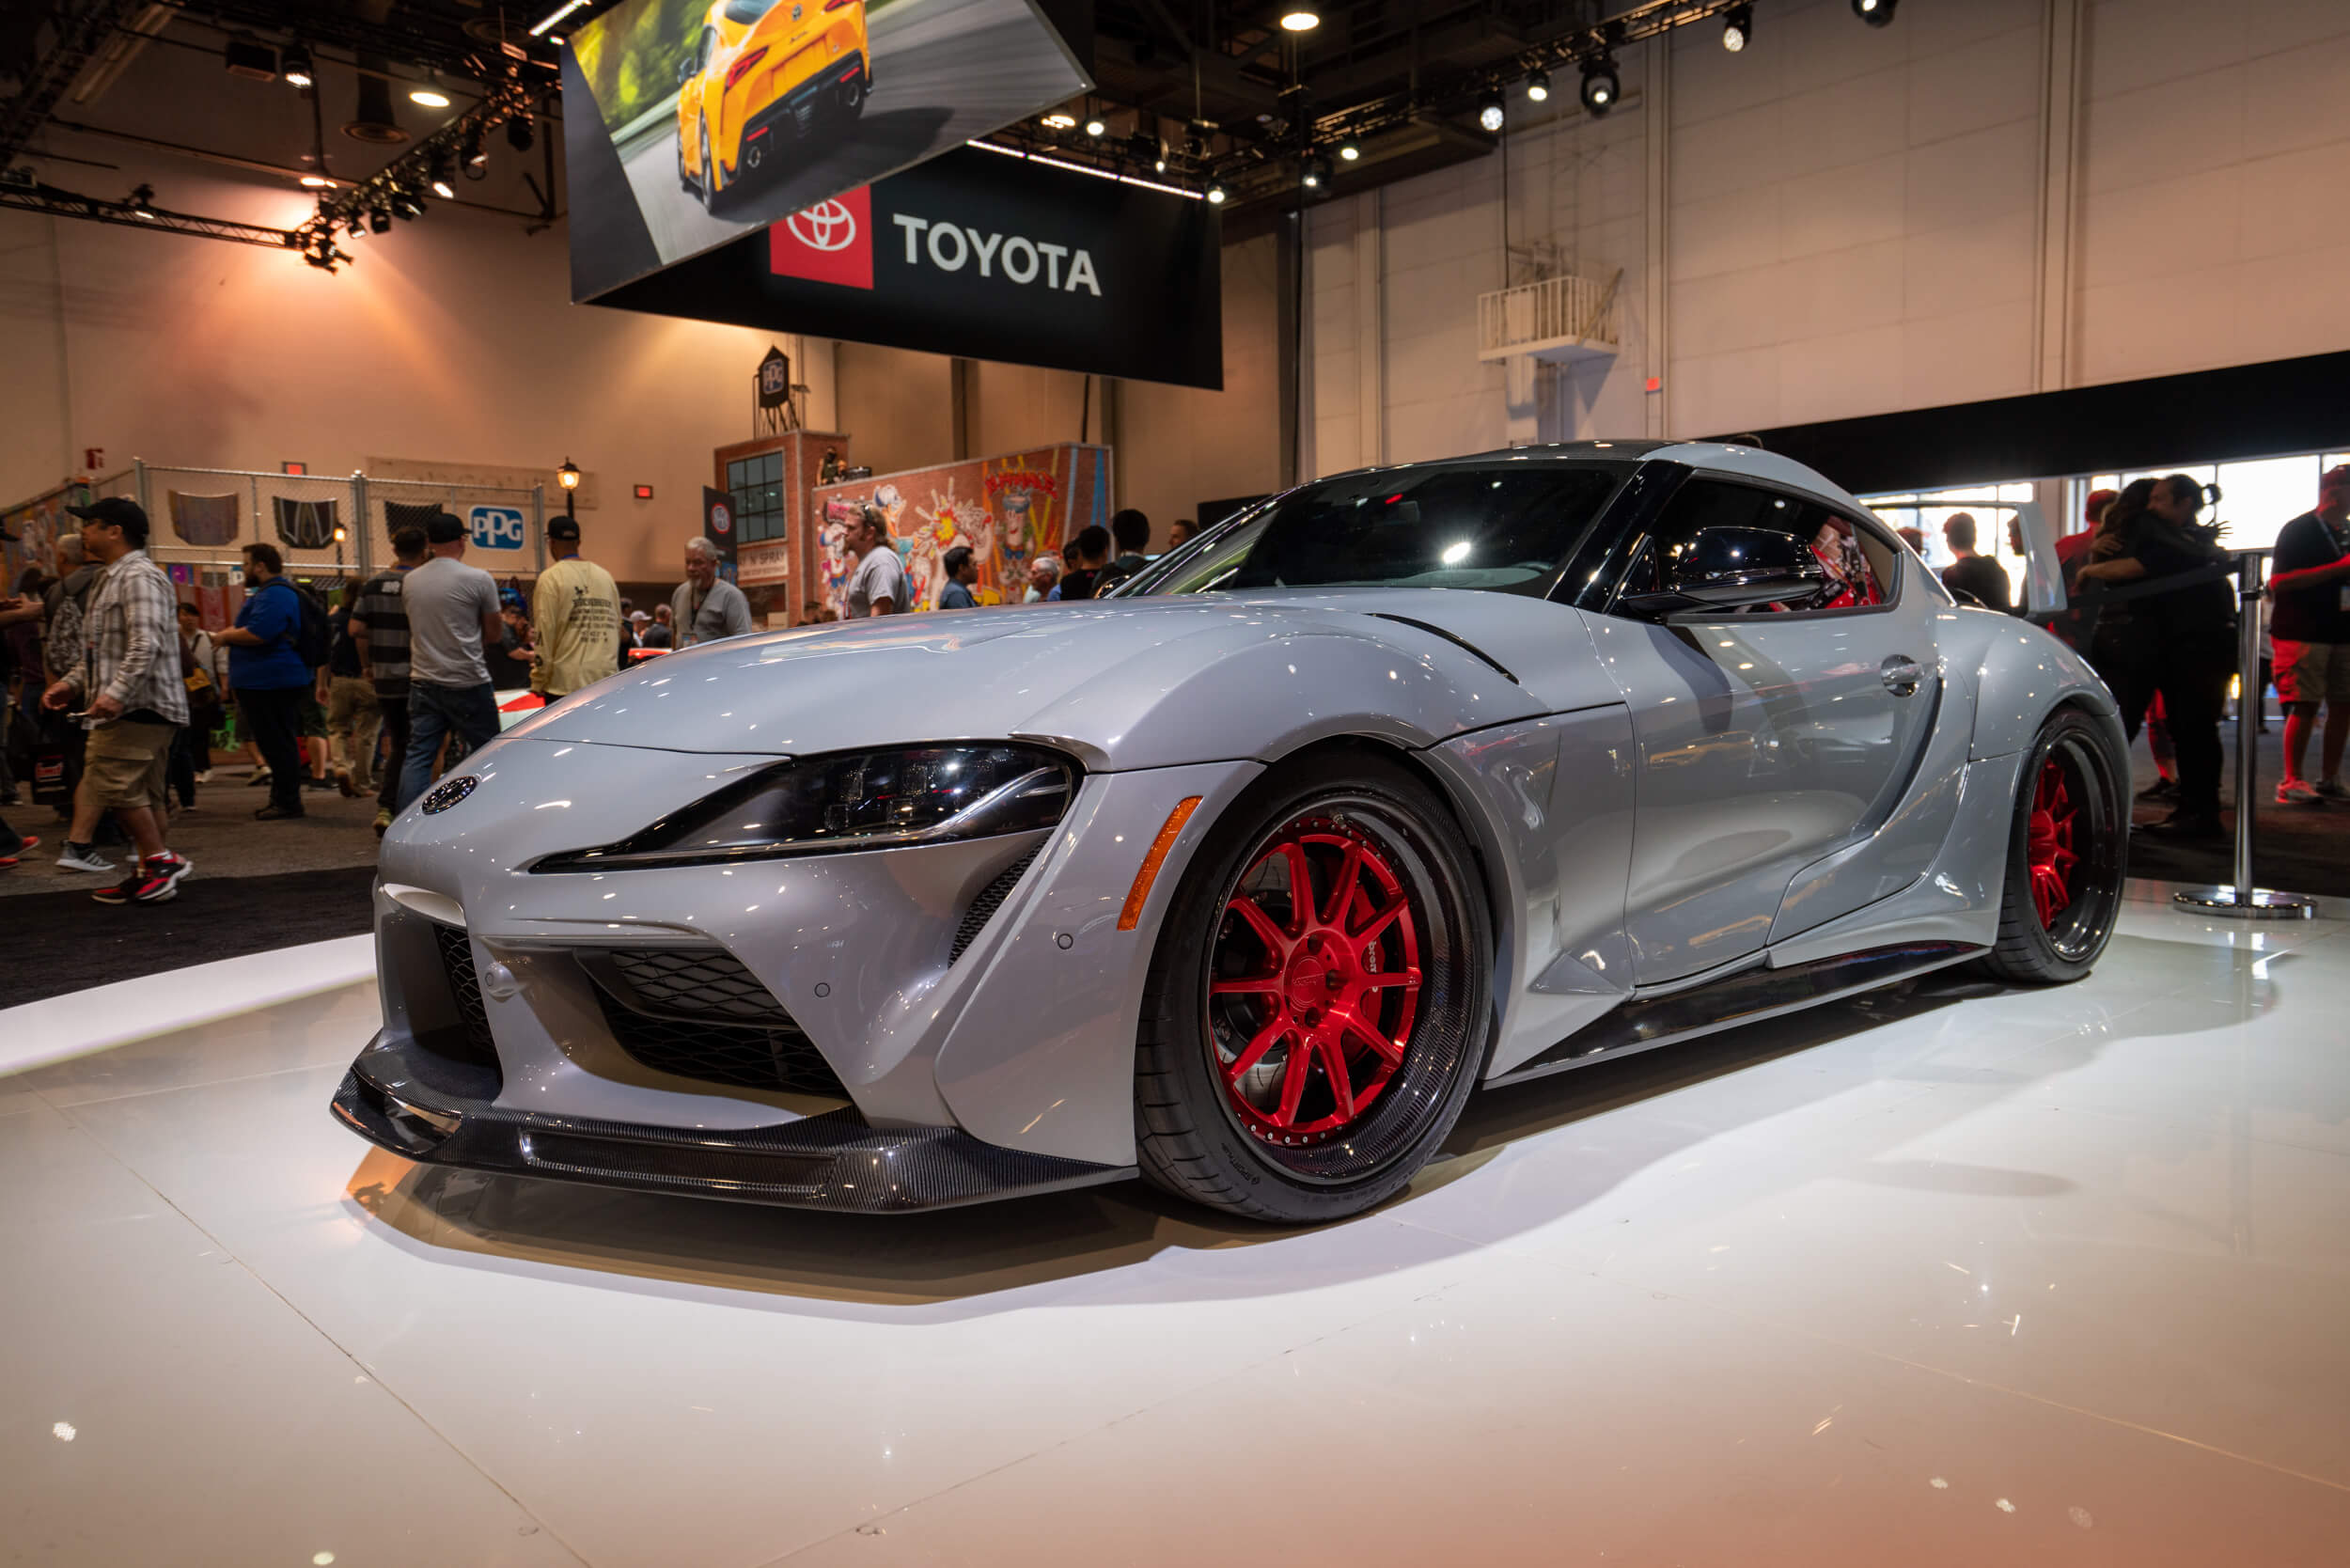 The 2020 Toyota Supra was out in force at SEMA 2019